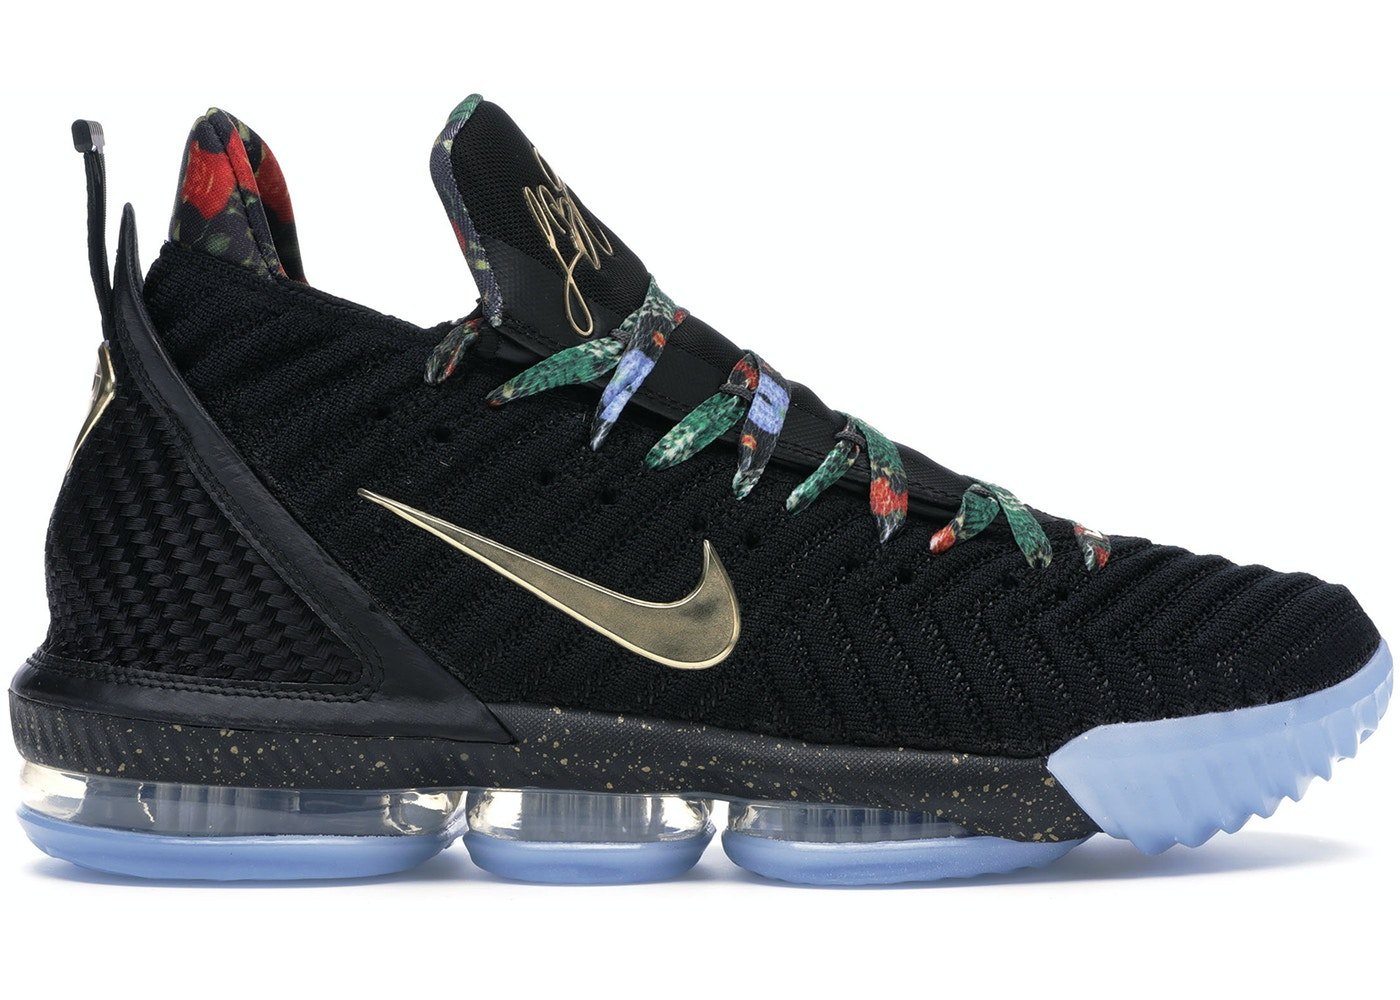 finest selection 3e611 a21db LeBron 16 Watch the Throne